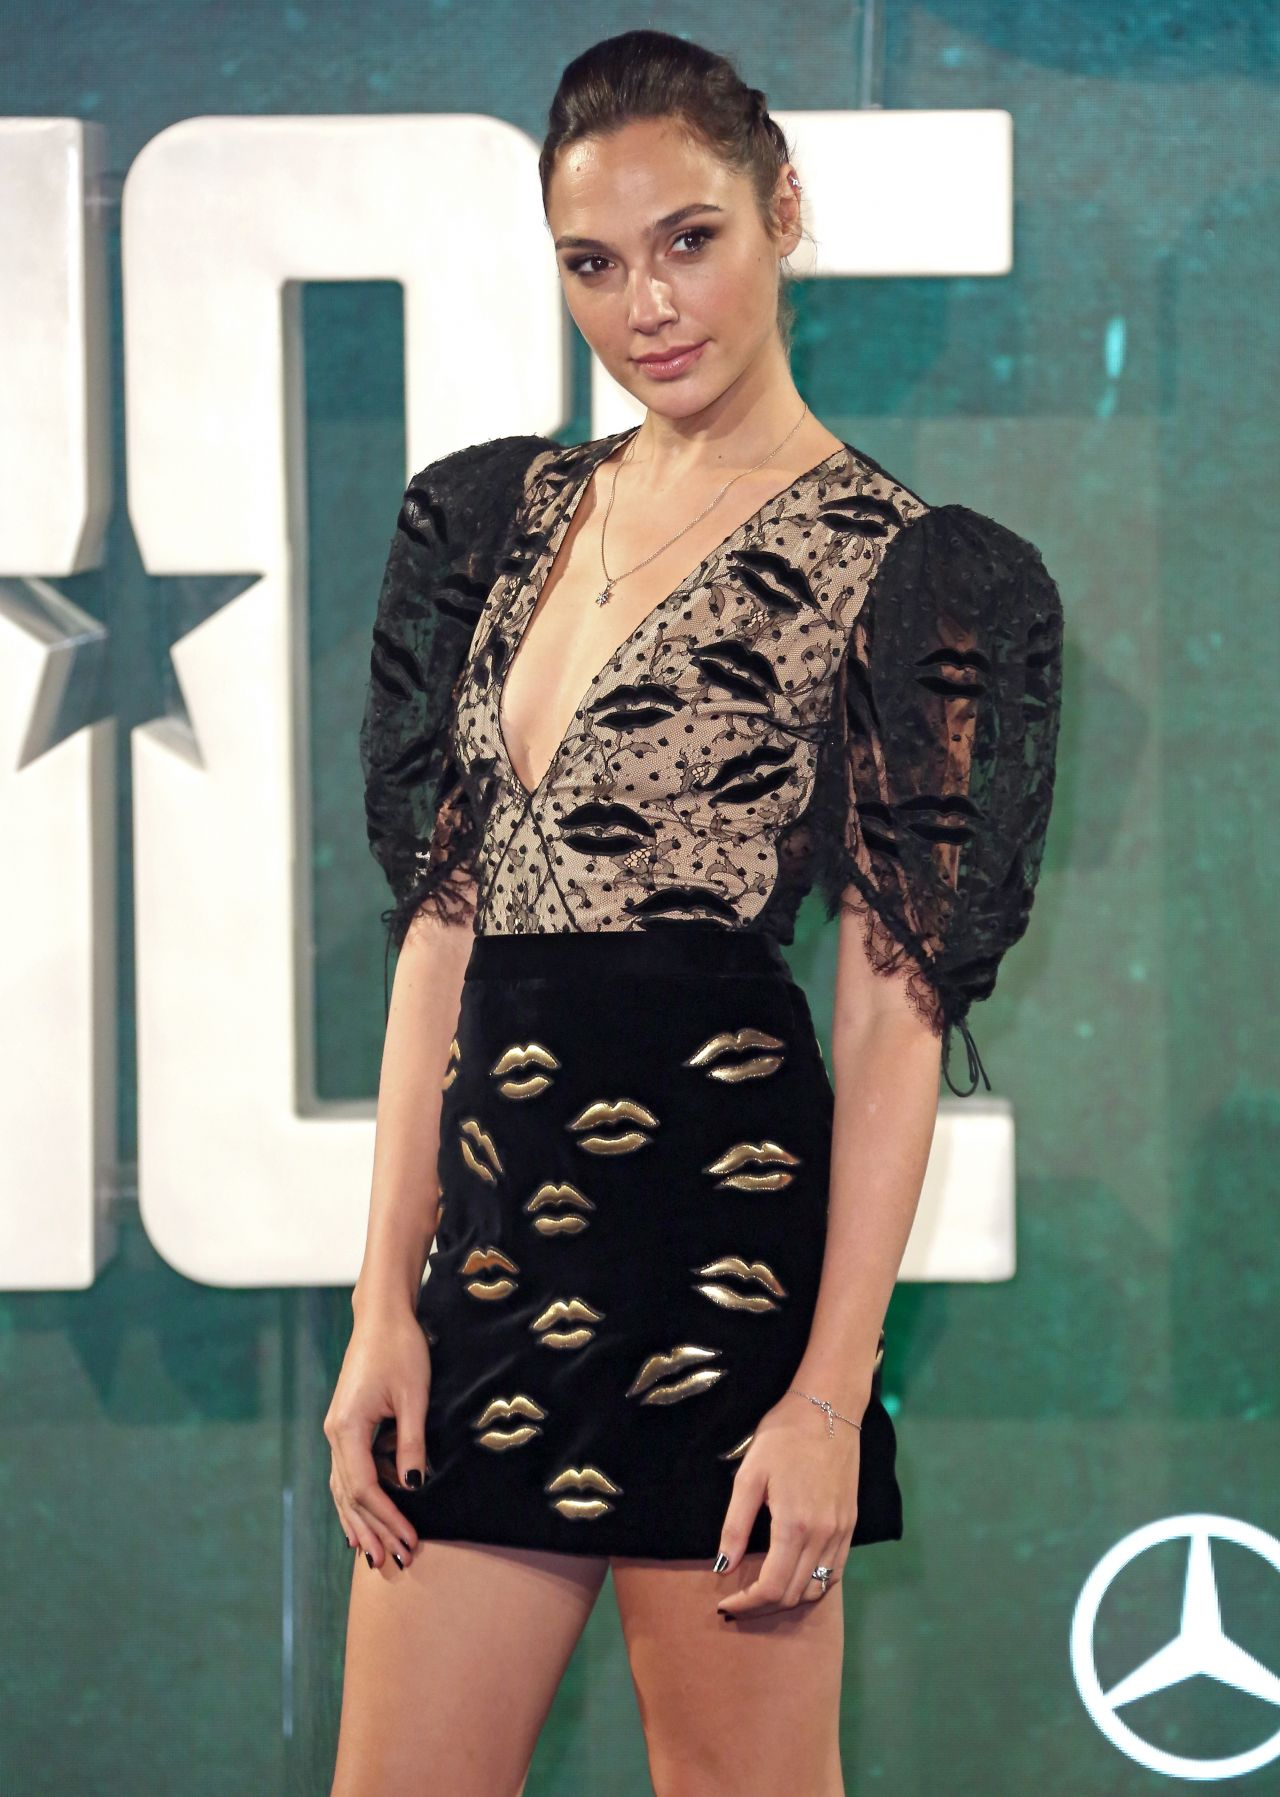 http://celebmafia.com/wp-content/uploads/2017/11/gal-gadot-justice-league-photocall-in-london-11-04-2017-1.jpg